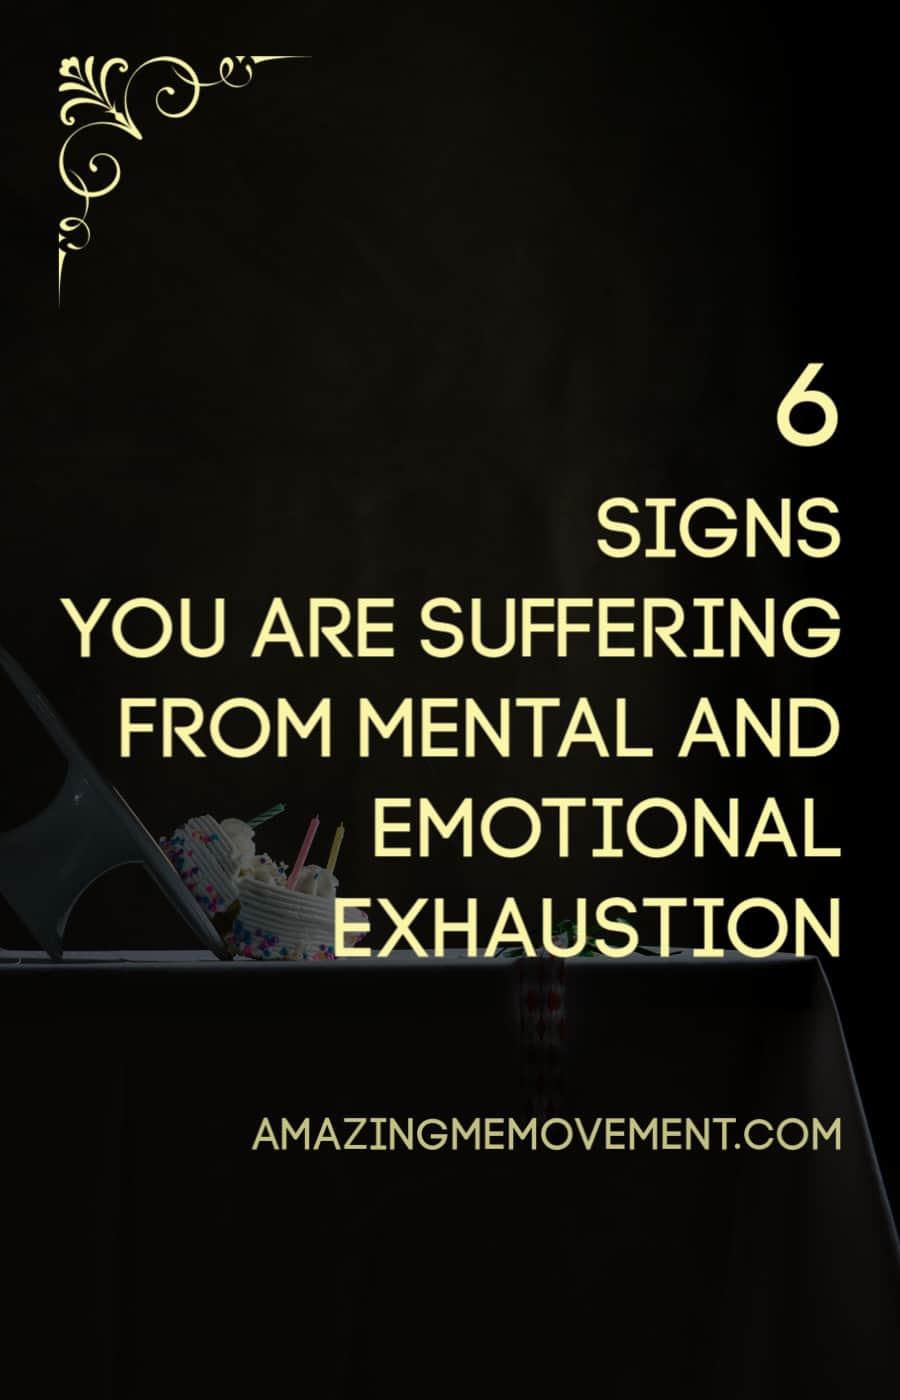 6 signs you are suffering from mental and emotional exhaustion